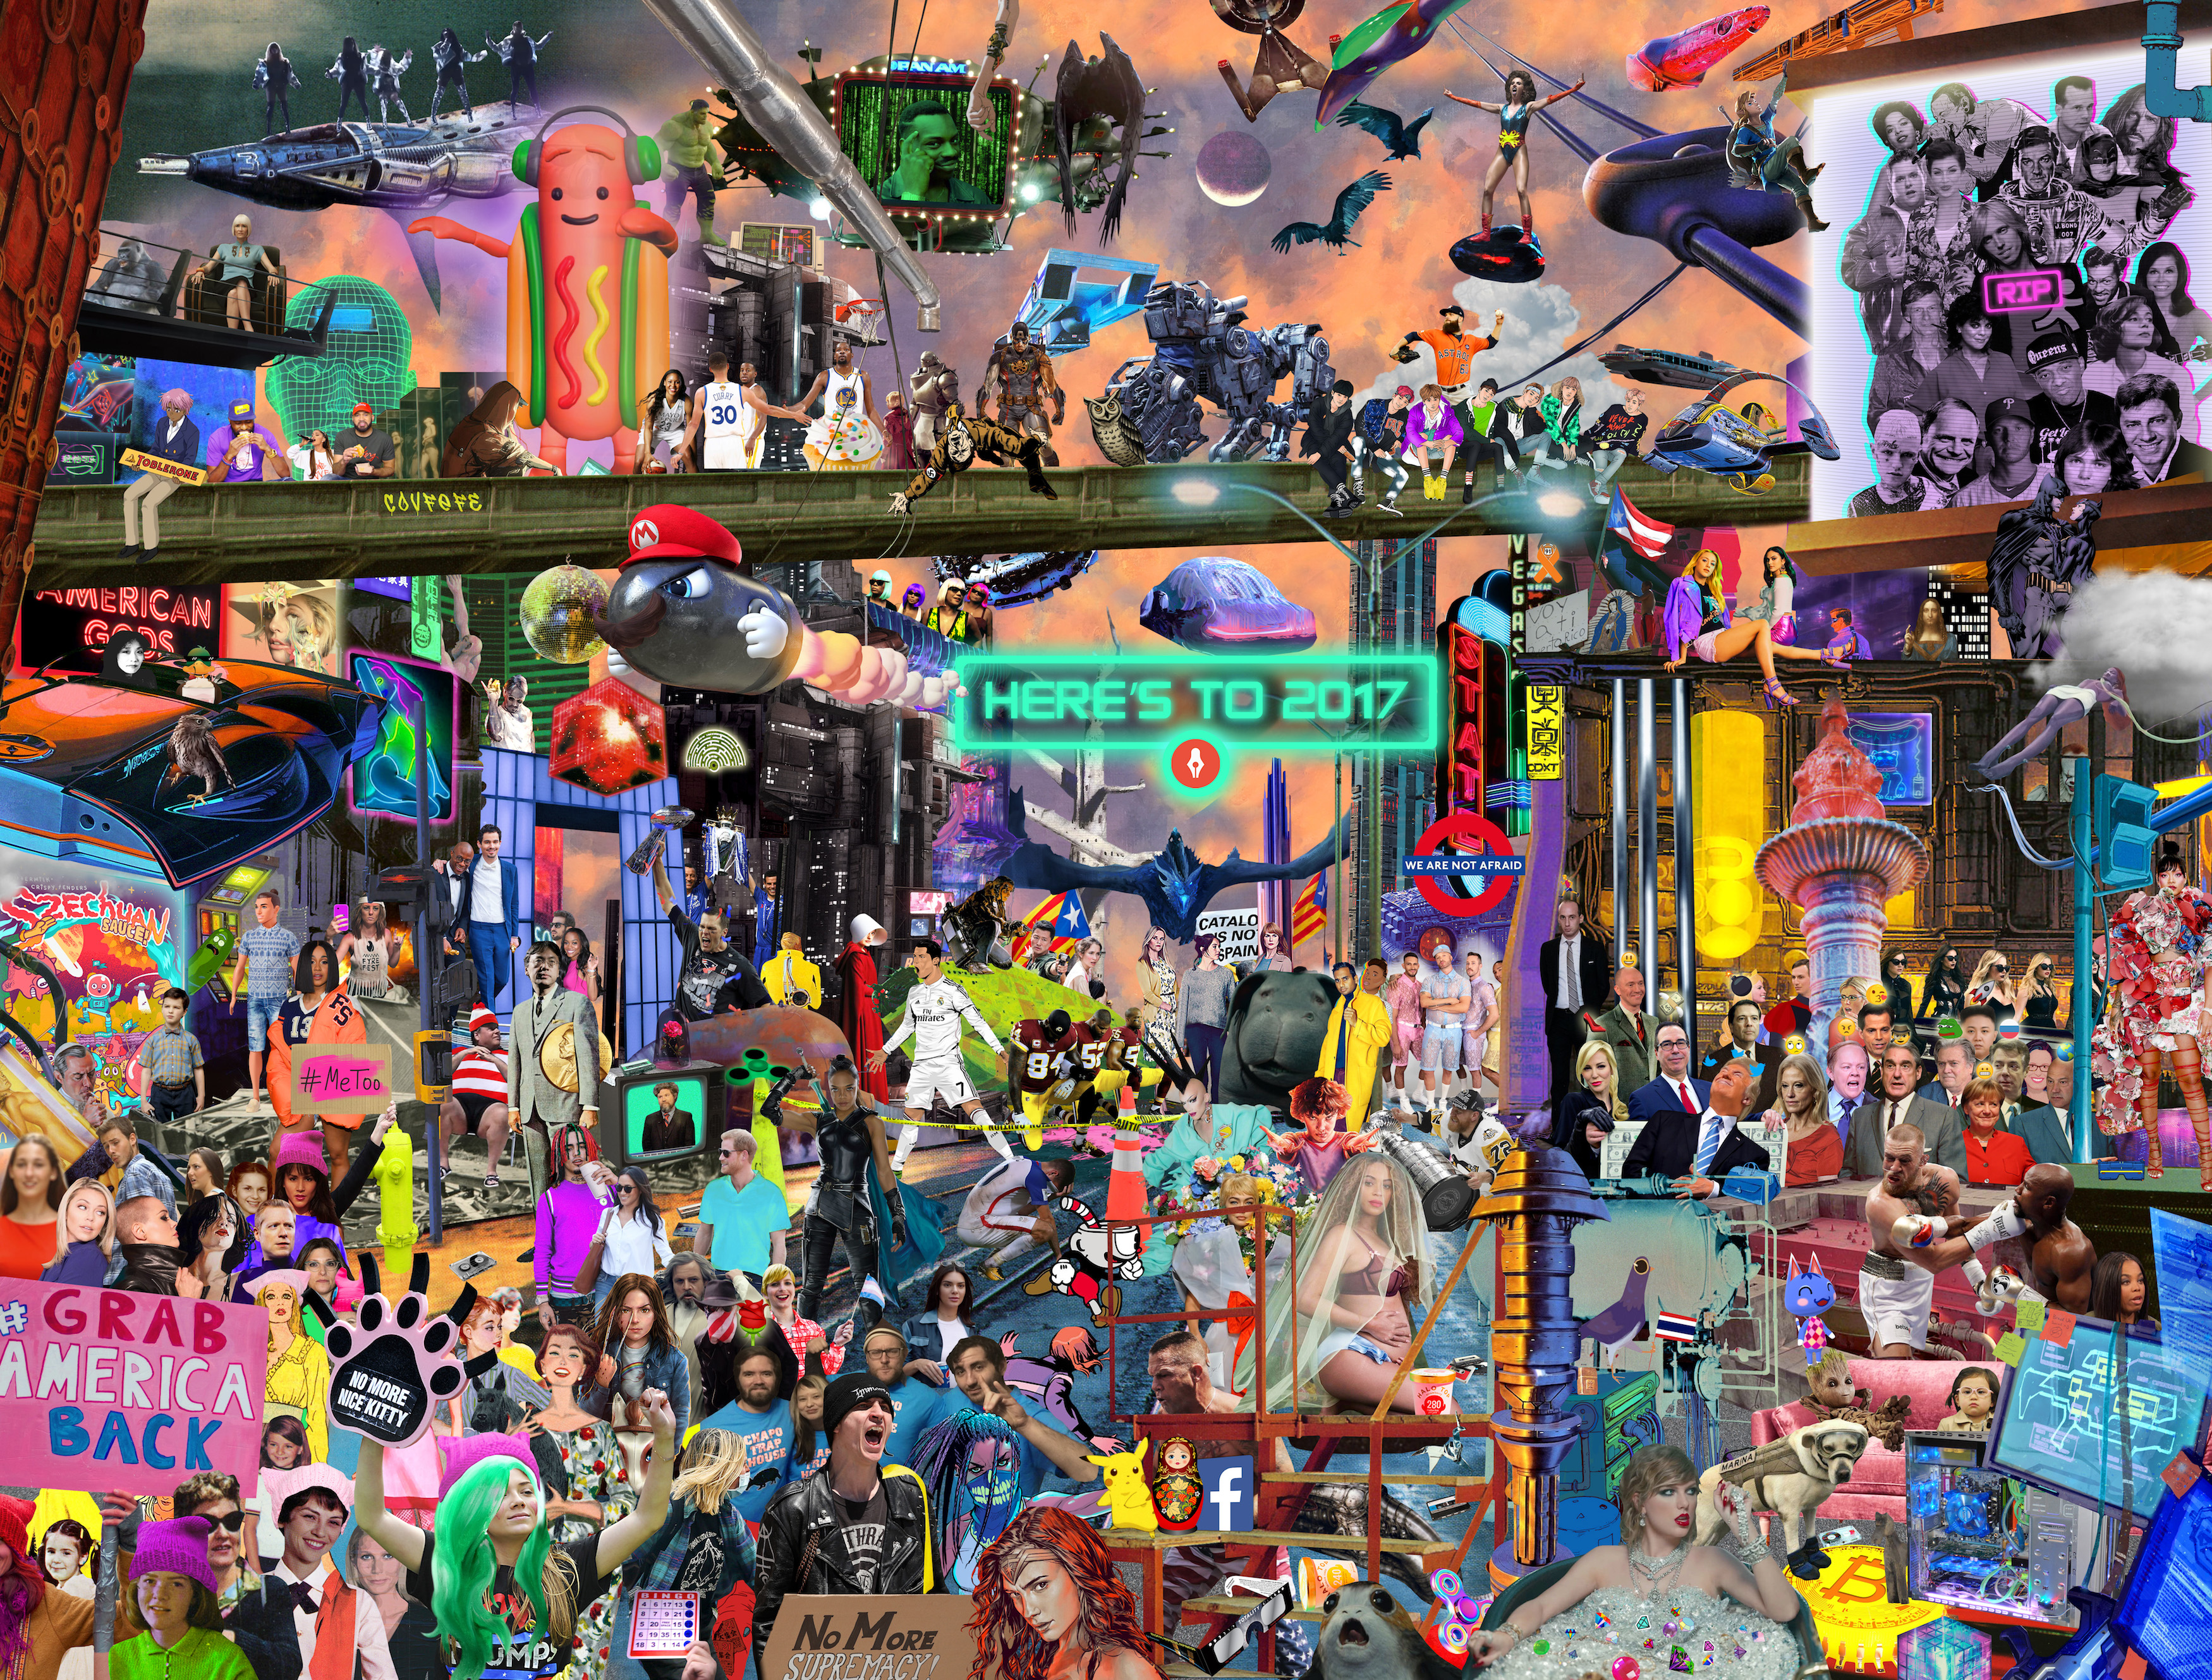 Here 39 s to 2017 a mashup art print of memorable pop for Craft fair nyc 2017